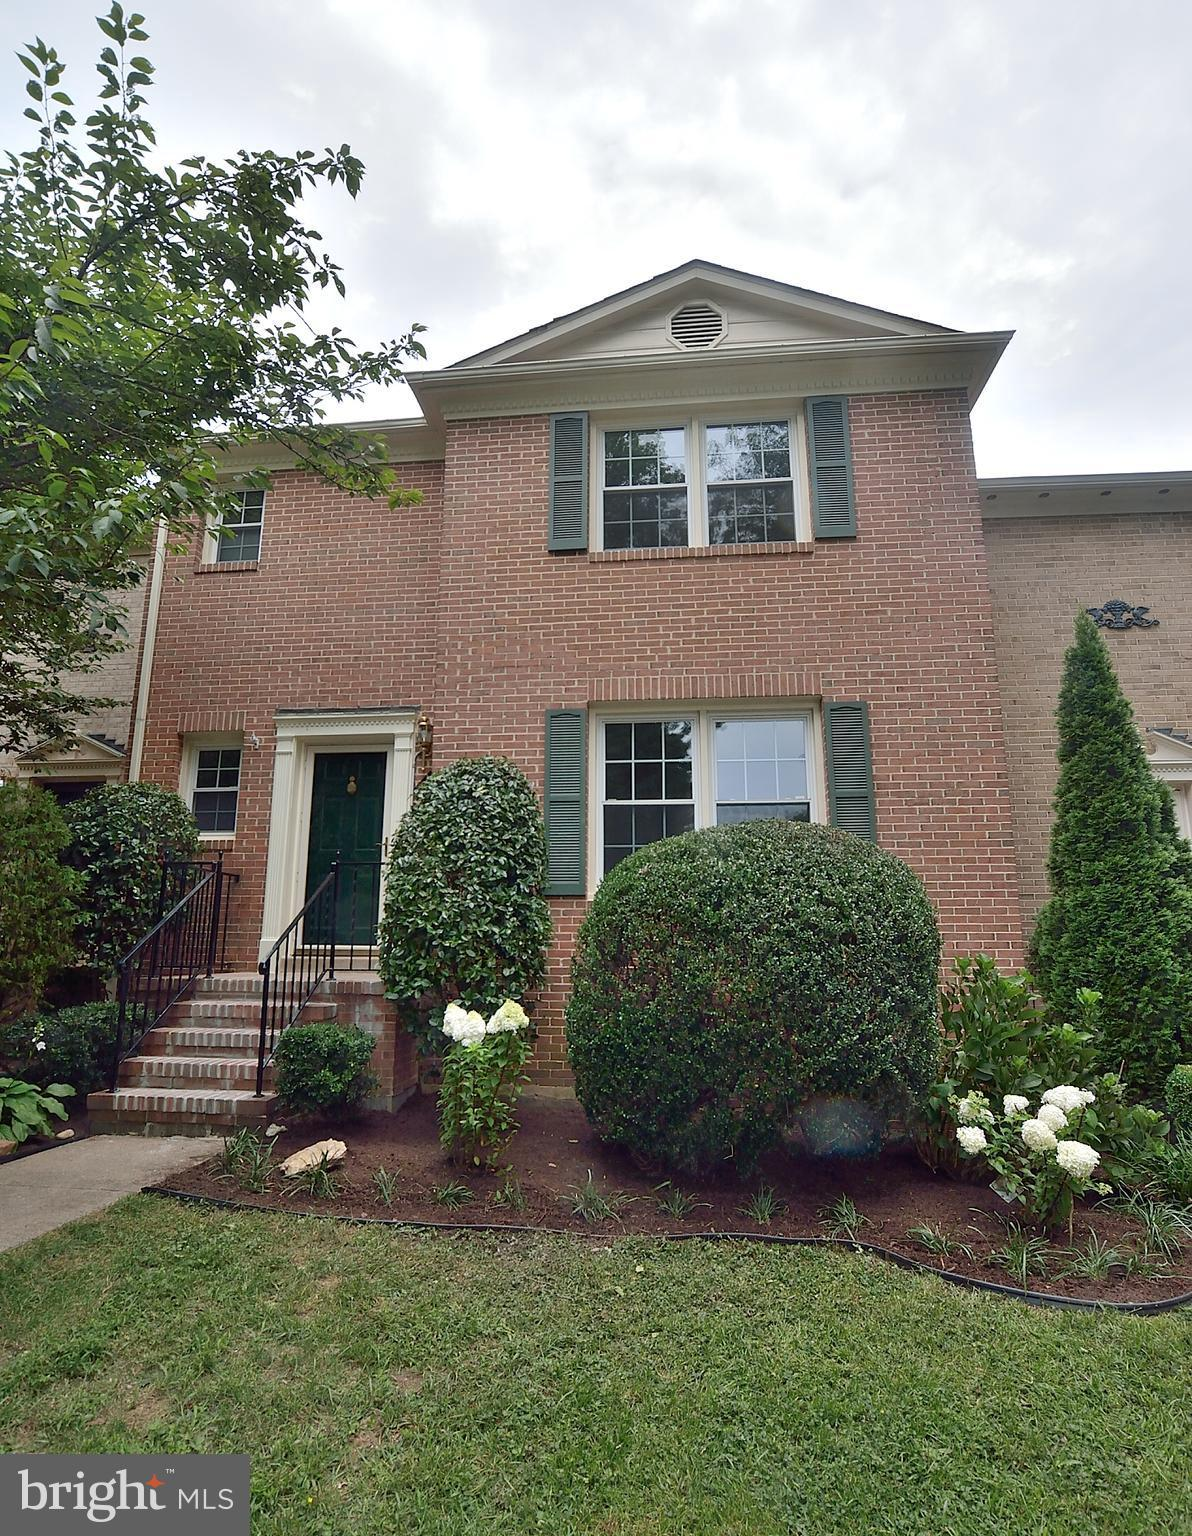 WONDERFUL BRICK TOWNHOUSE WITH MANY UPDATES TOP TO BOTTOM. KITCHEN, BATHS, SOME FLOORS, LIGHTS, FINISHED LOWER LEVEL WITH MASONRY FIREPLACE, REC ROOM, HALF BATH AND LARGE STORAGE/LAUNDRY ROOM.STRATEGIC LOCATION TO SHOPPING, SCHOOLS, PARKS AND MAJOR ARTERIES..